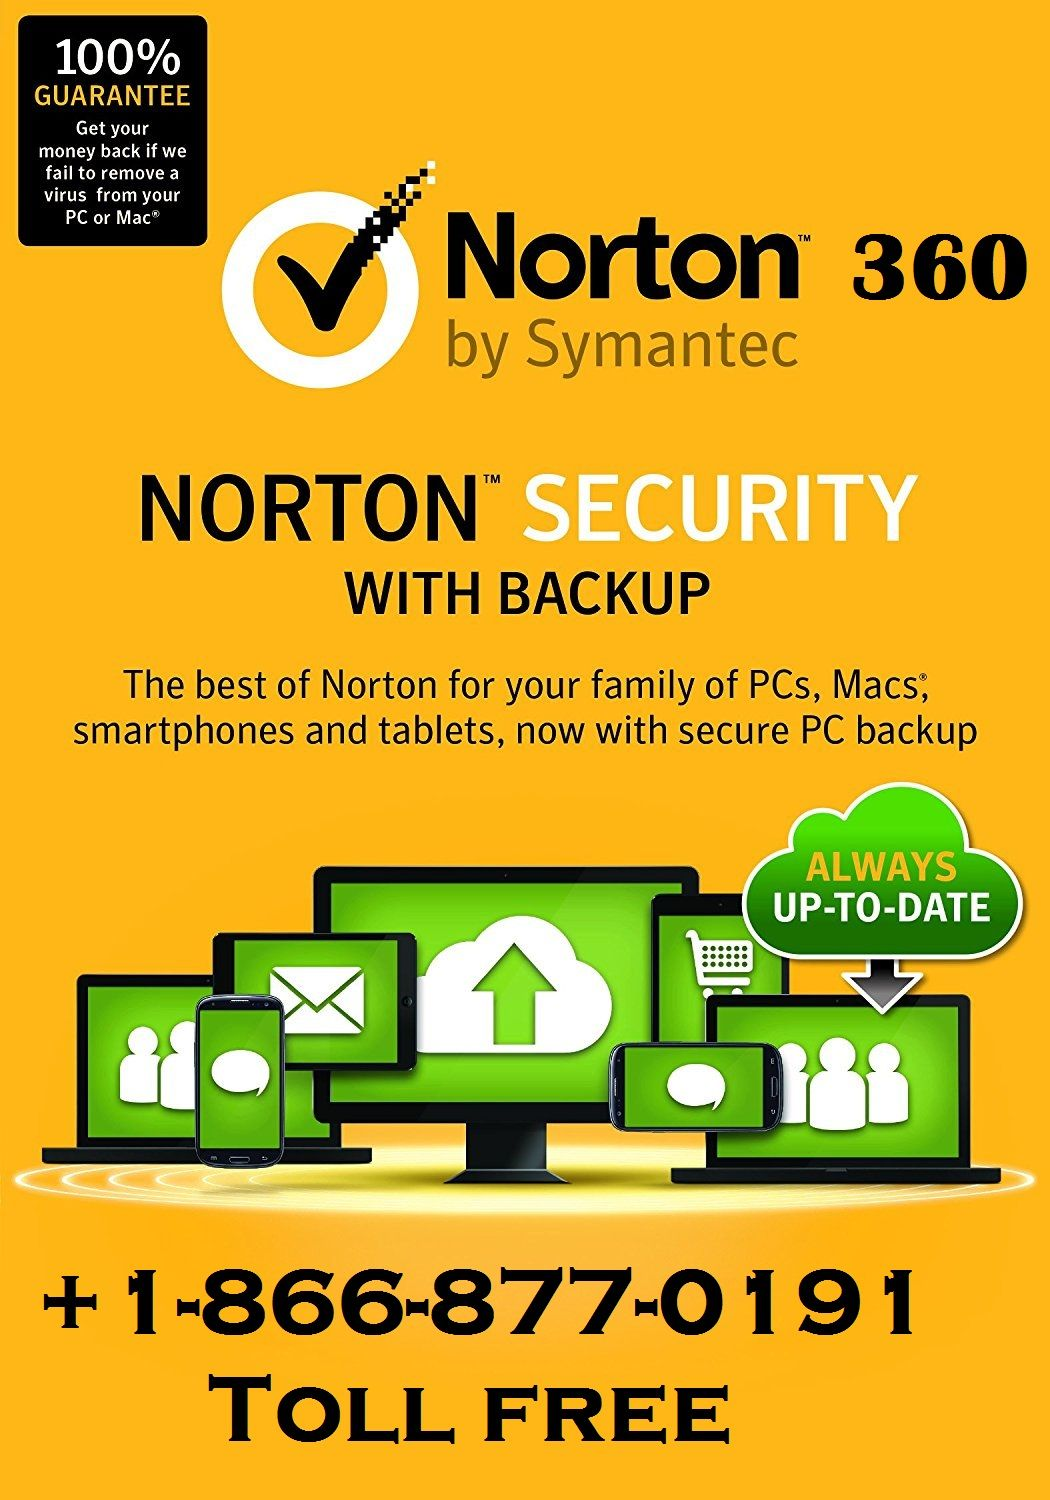 Norton 360 Customer Service Phone Number 18668770191